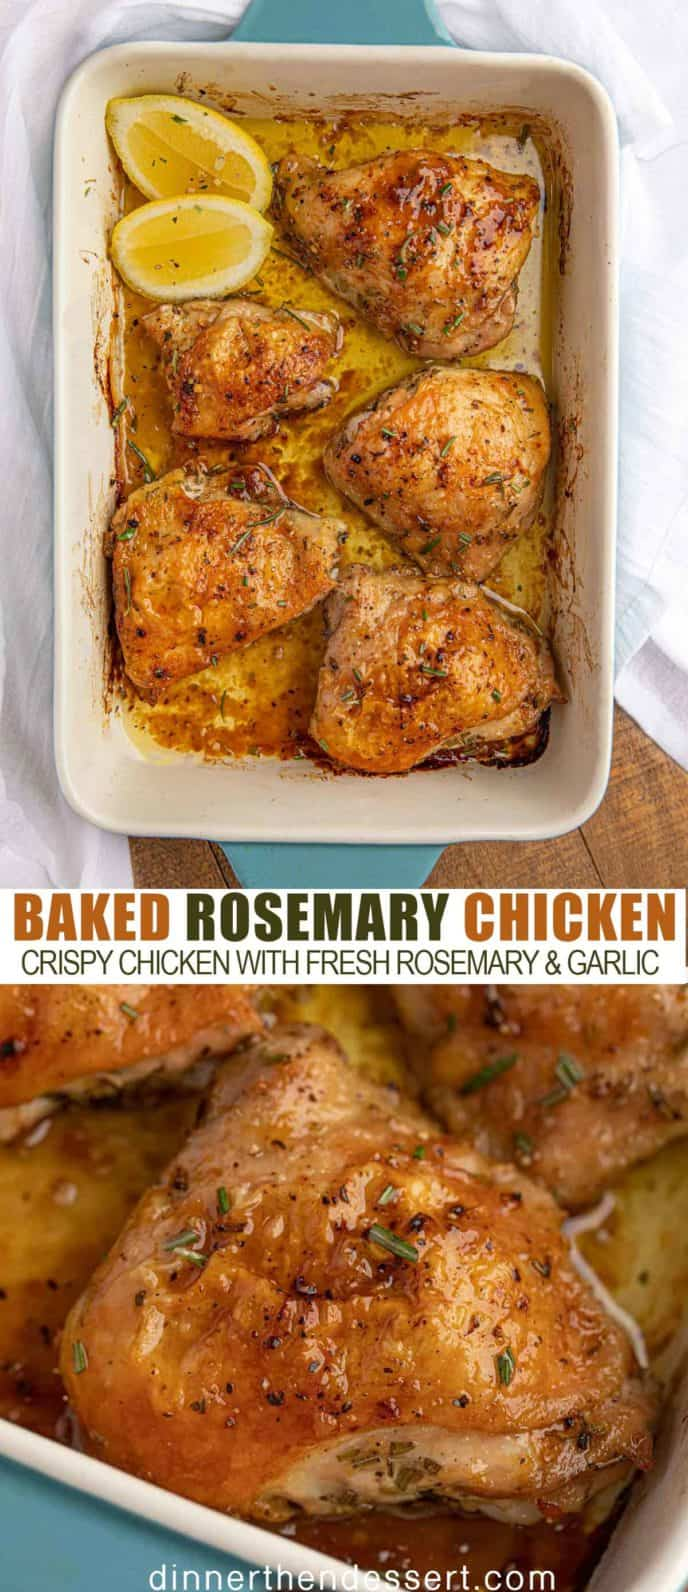 Baked Rosemary Chicken in a blue pan